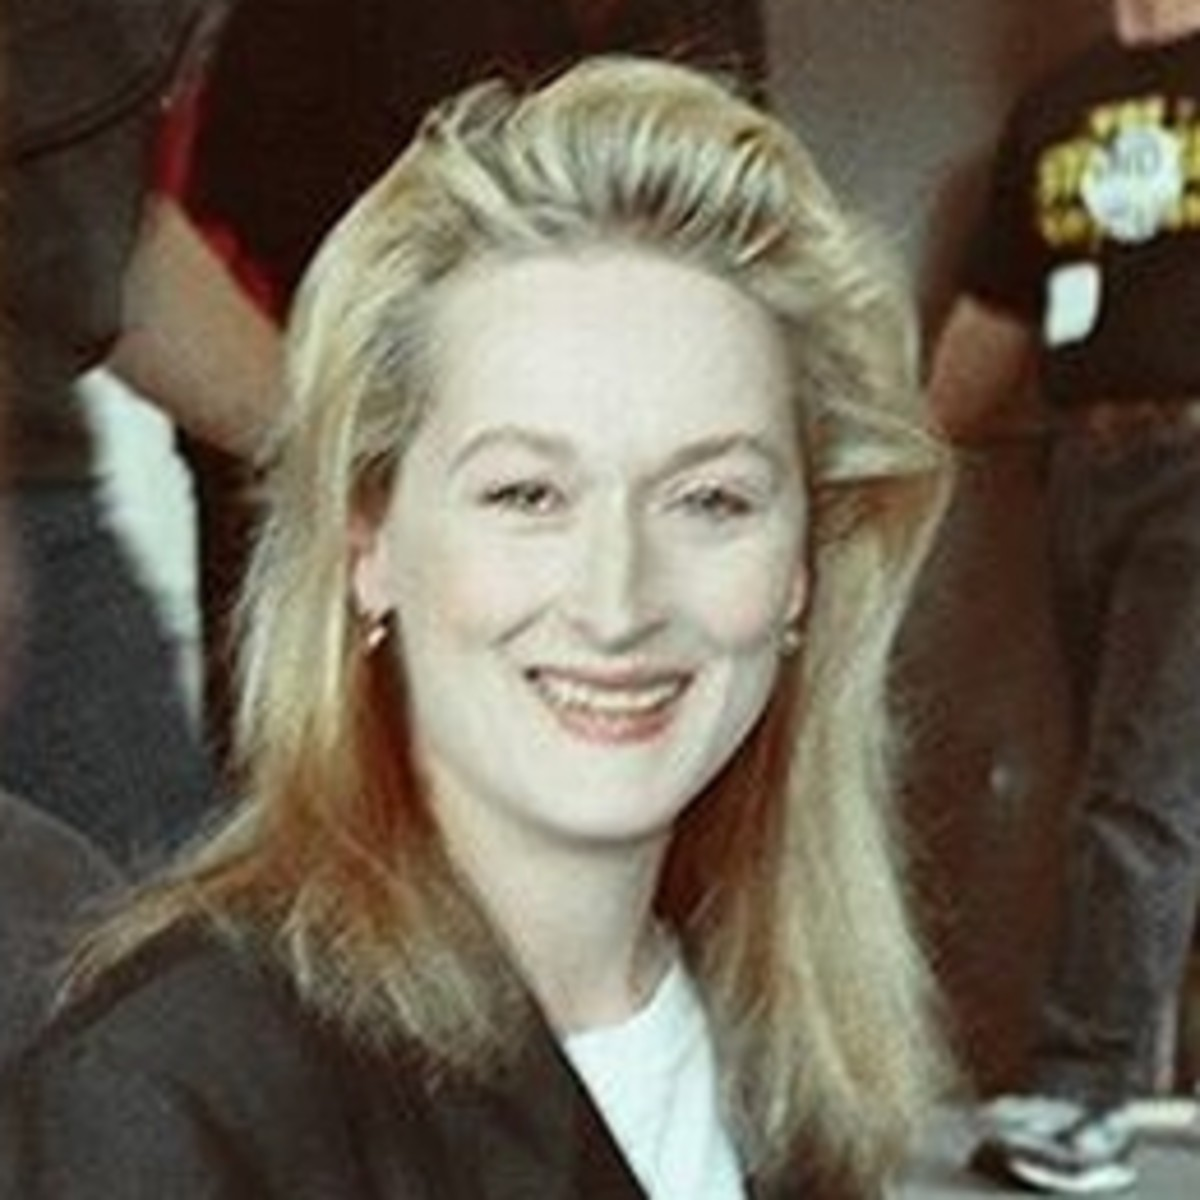 Meryl Streep, married since 1978